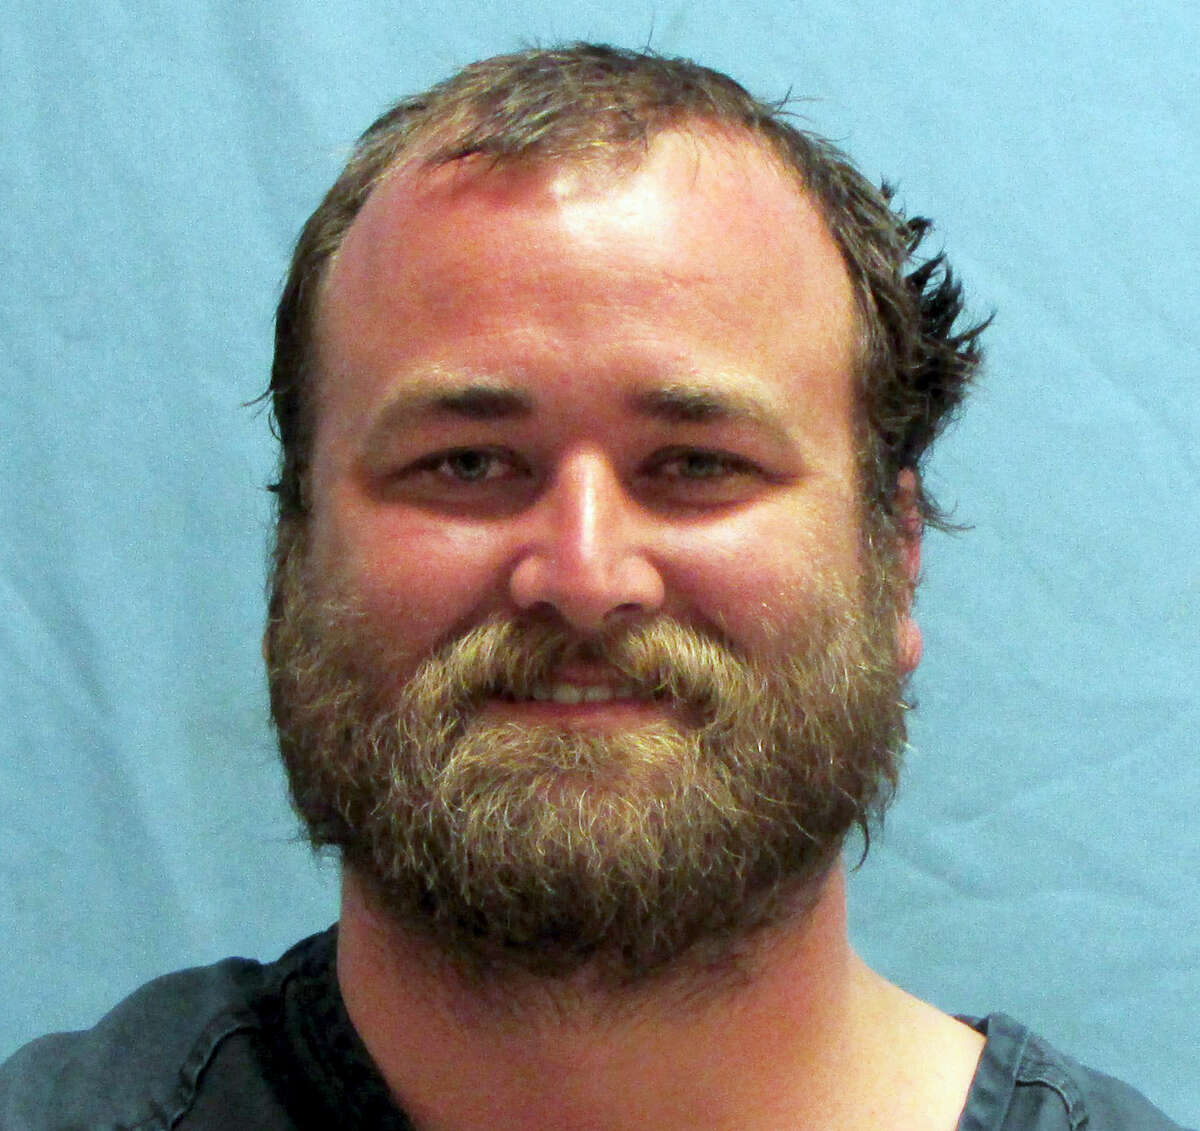 This photo provided by the Pulaski County Sheriff's Office in Little Rock, Ark., shows Michael Tate Reed, of Van Buren, Ark., who was booked into the jail Wednesday morning, June 28, 2017, on preliminary charges of defacing objects of public interest, criminal trespass and first-degree criminal mischief. He is accused driving a vehicle into Arkansas' new Ten Commandments monument on the state Capitol grounds in Little Rock.